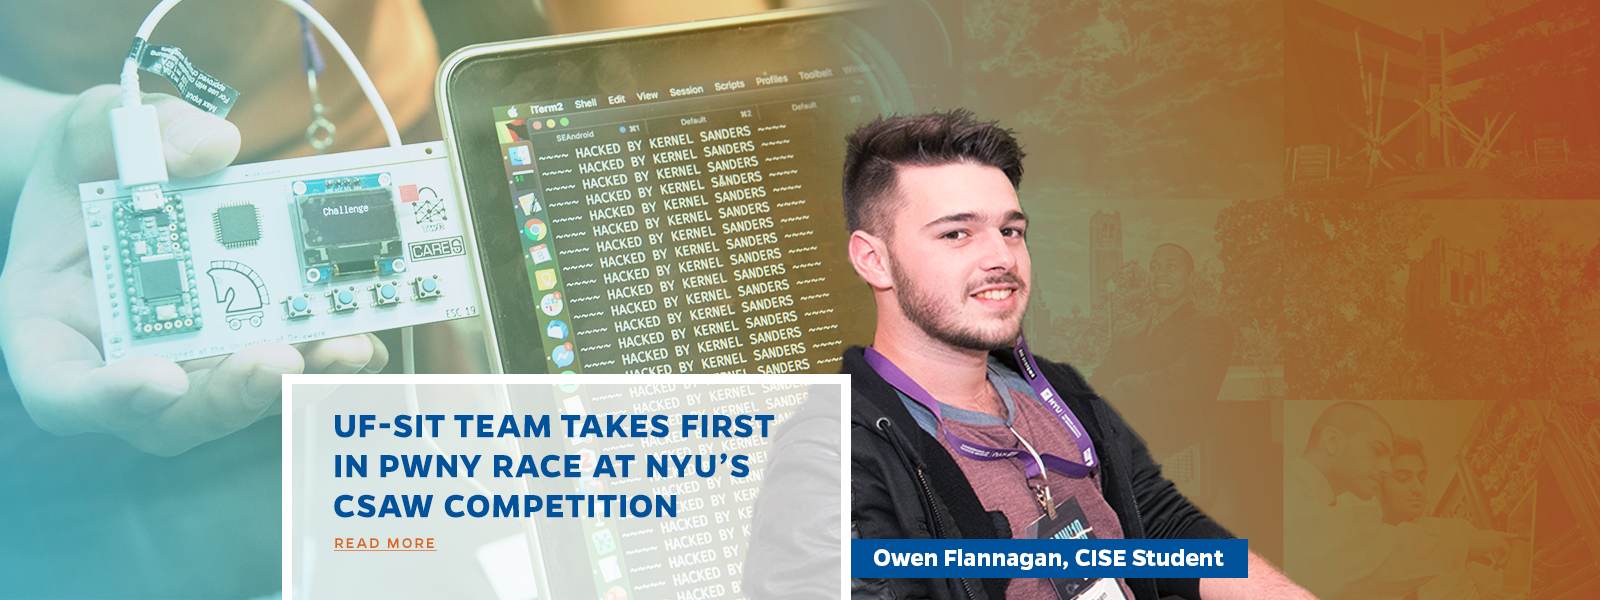 UF-SIT Team Takes First in Pwny Race at NYU's CSAW Competition